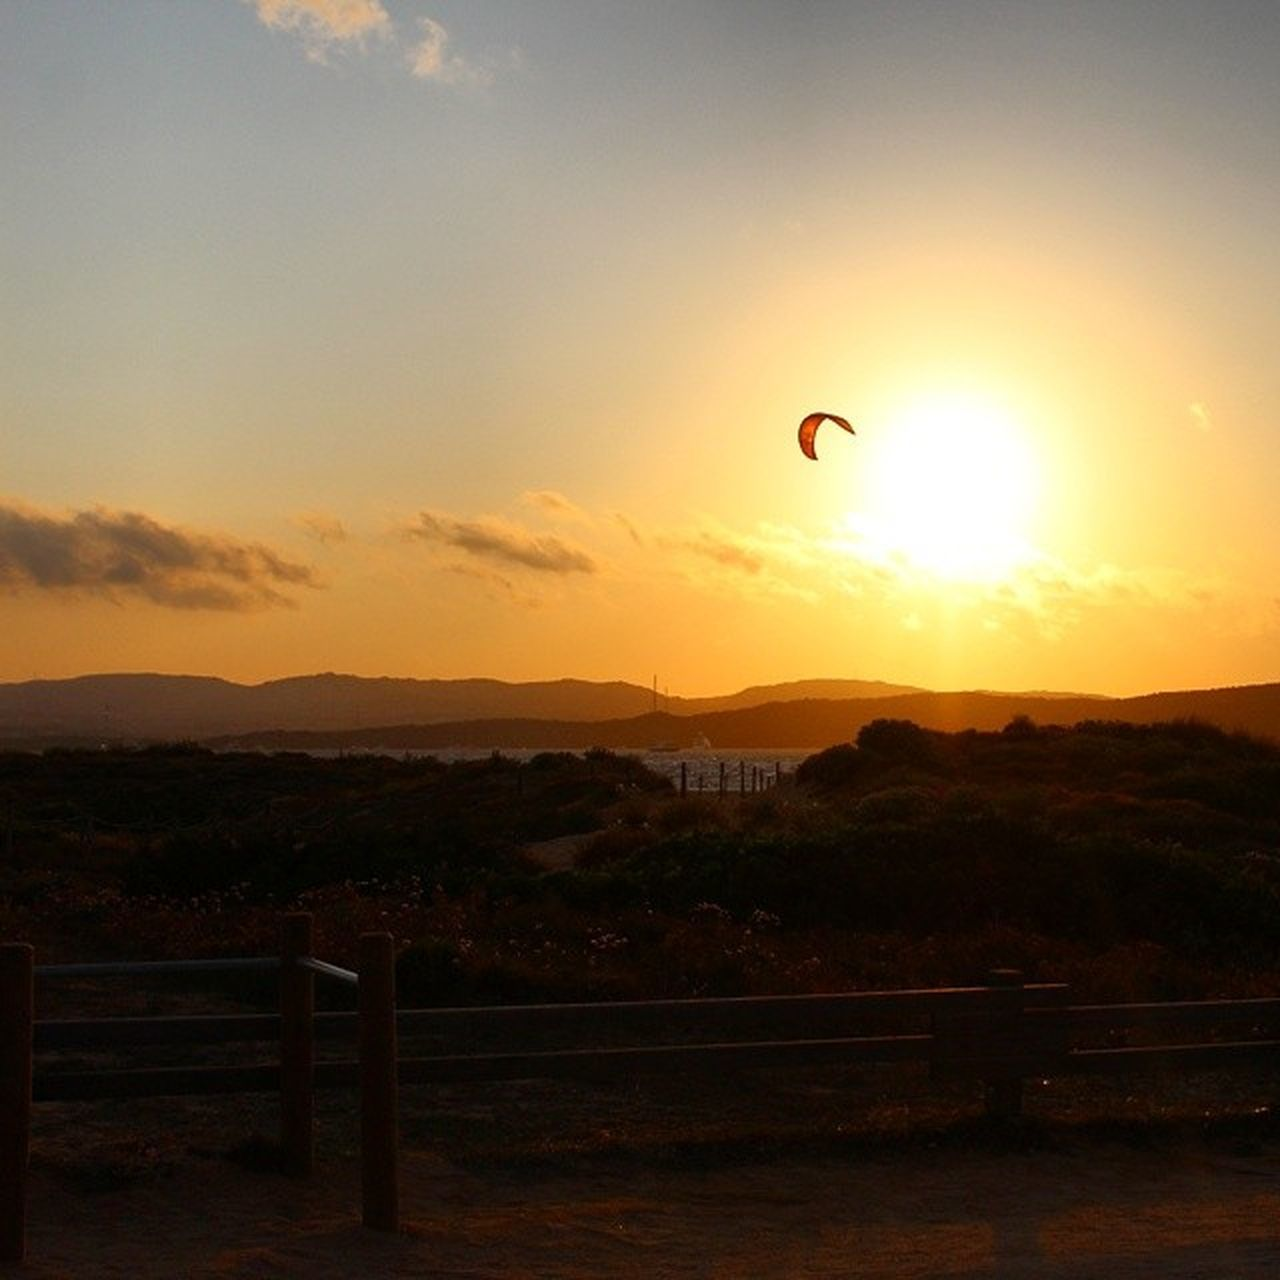 Sunset in Sardinia Sunset Sardegna Portopollo Isoladeigabbiani Tramonto Sea Waves Instagram Instapics Miss Summer 2k14 Kitesurf Animals Bestphotooftheday Picoftheday @natgeo Like Followme